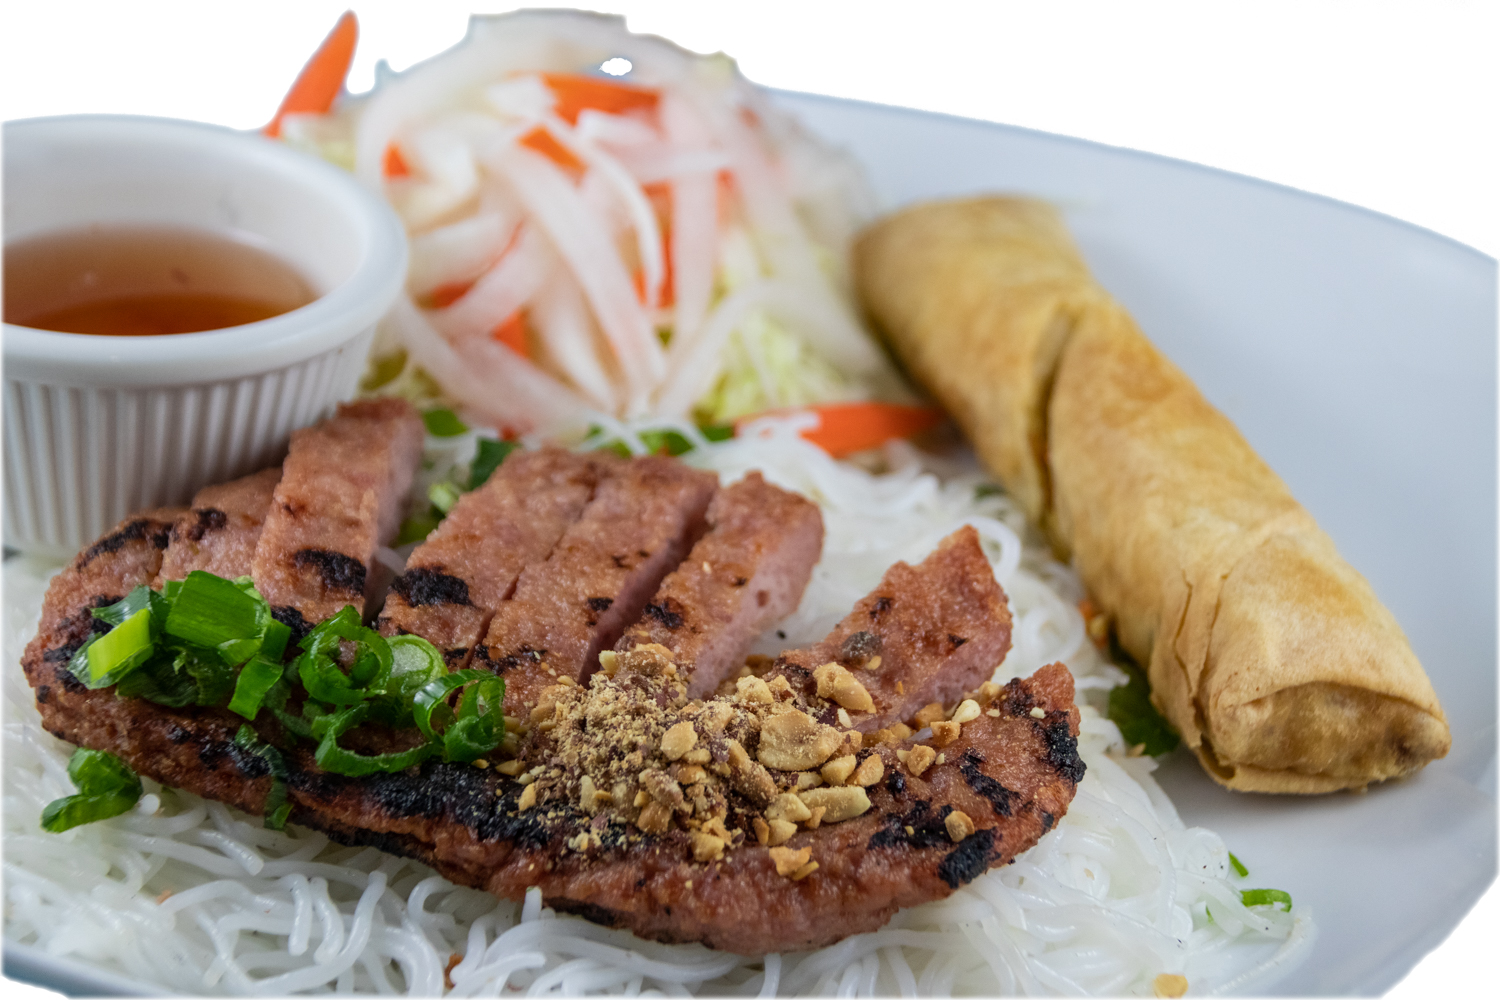 Bún nem nướng chả giò – Barbequed minced pork and spring roll  with rice noodles